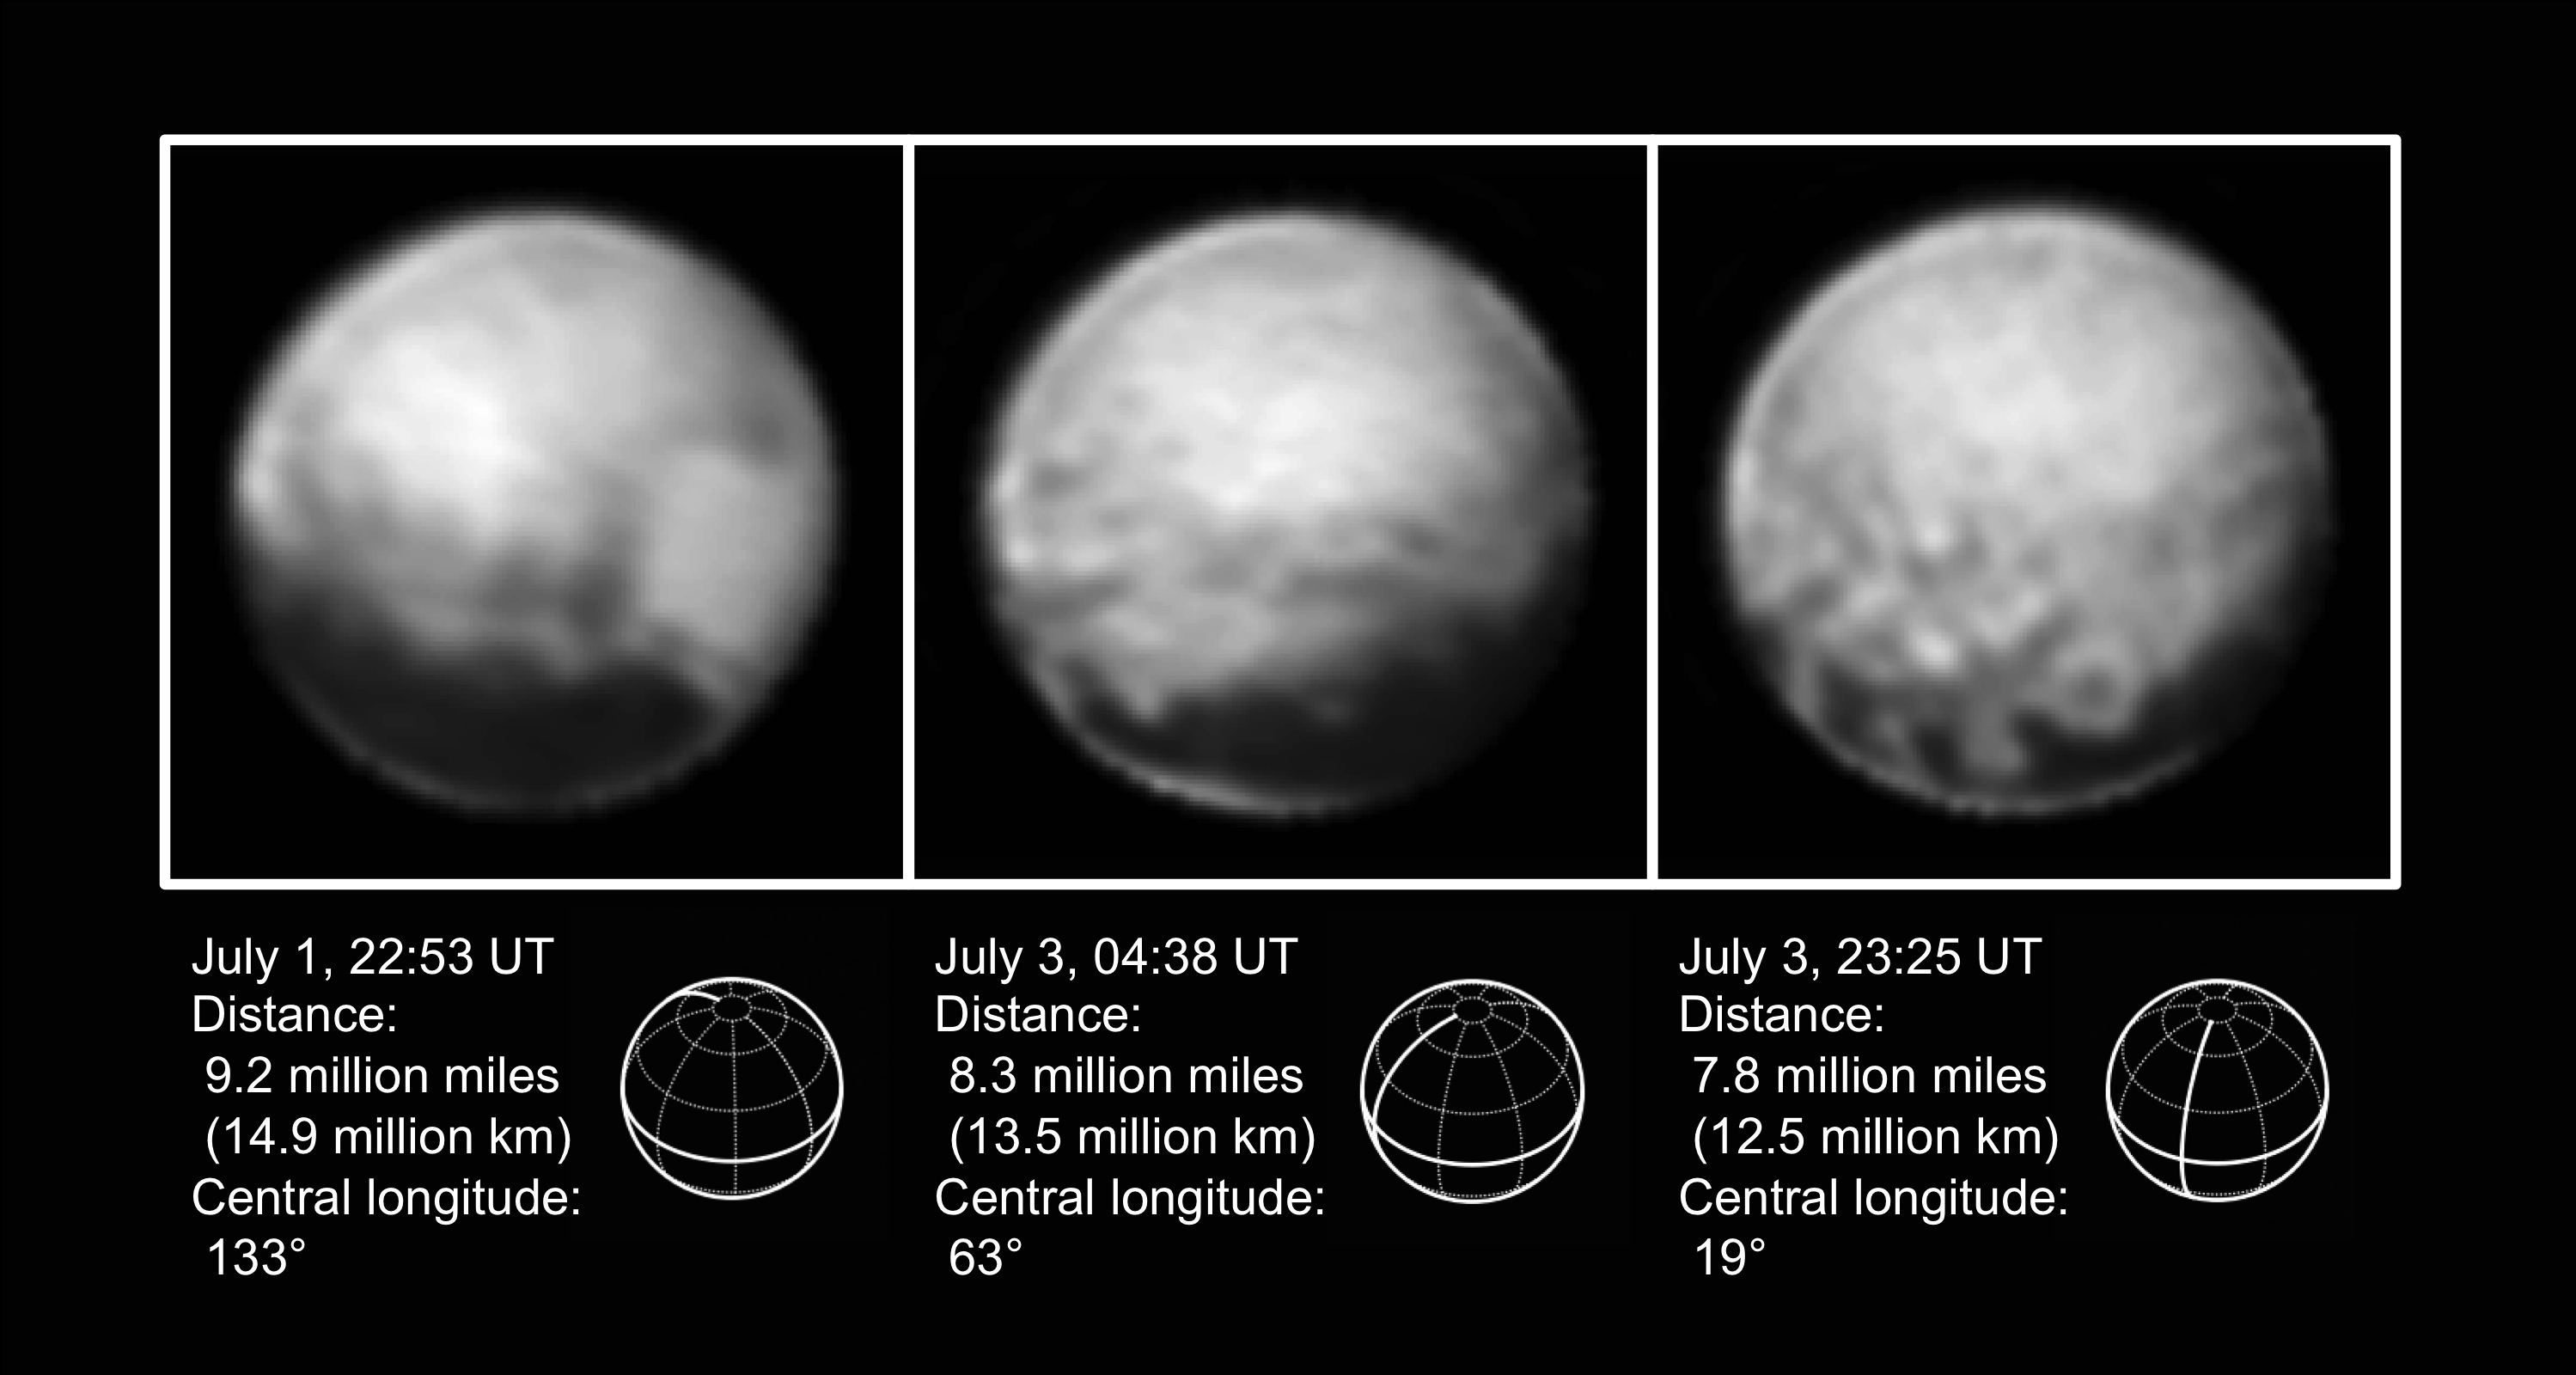 These high-resolution views of Pluto sent by NASA's New Horizons spacecraft include one showing the four mysterious dark spots that have captured the imagination of the world. The Long Range Reconnaissance Imager (LORRI) obtained these three images between July 1-3, 2015. Credit: NASA/Johns Hopkins University Applied Physics Laboratory/Southwest Research Institute